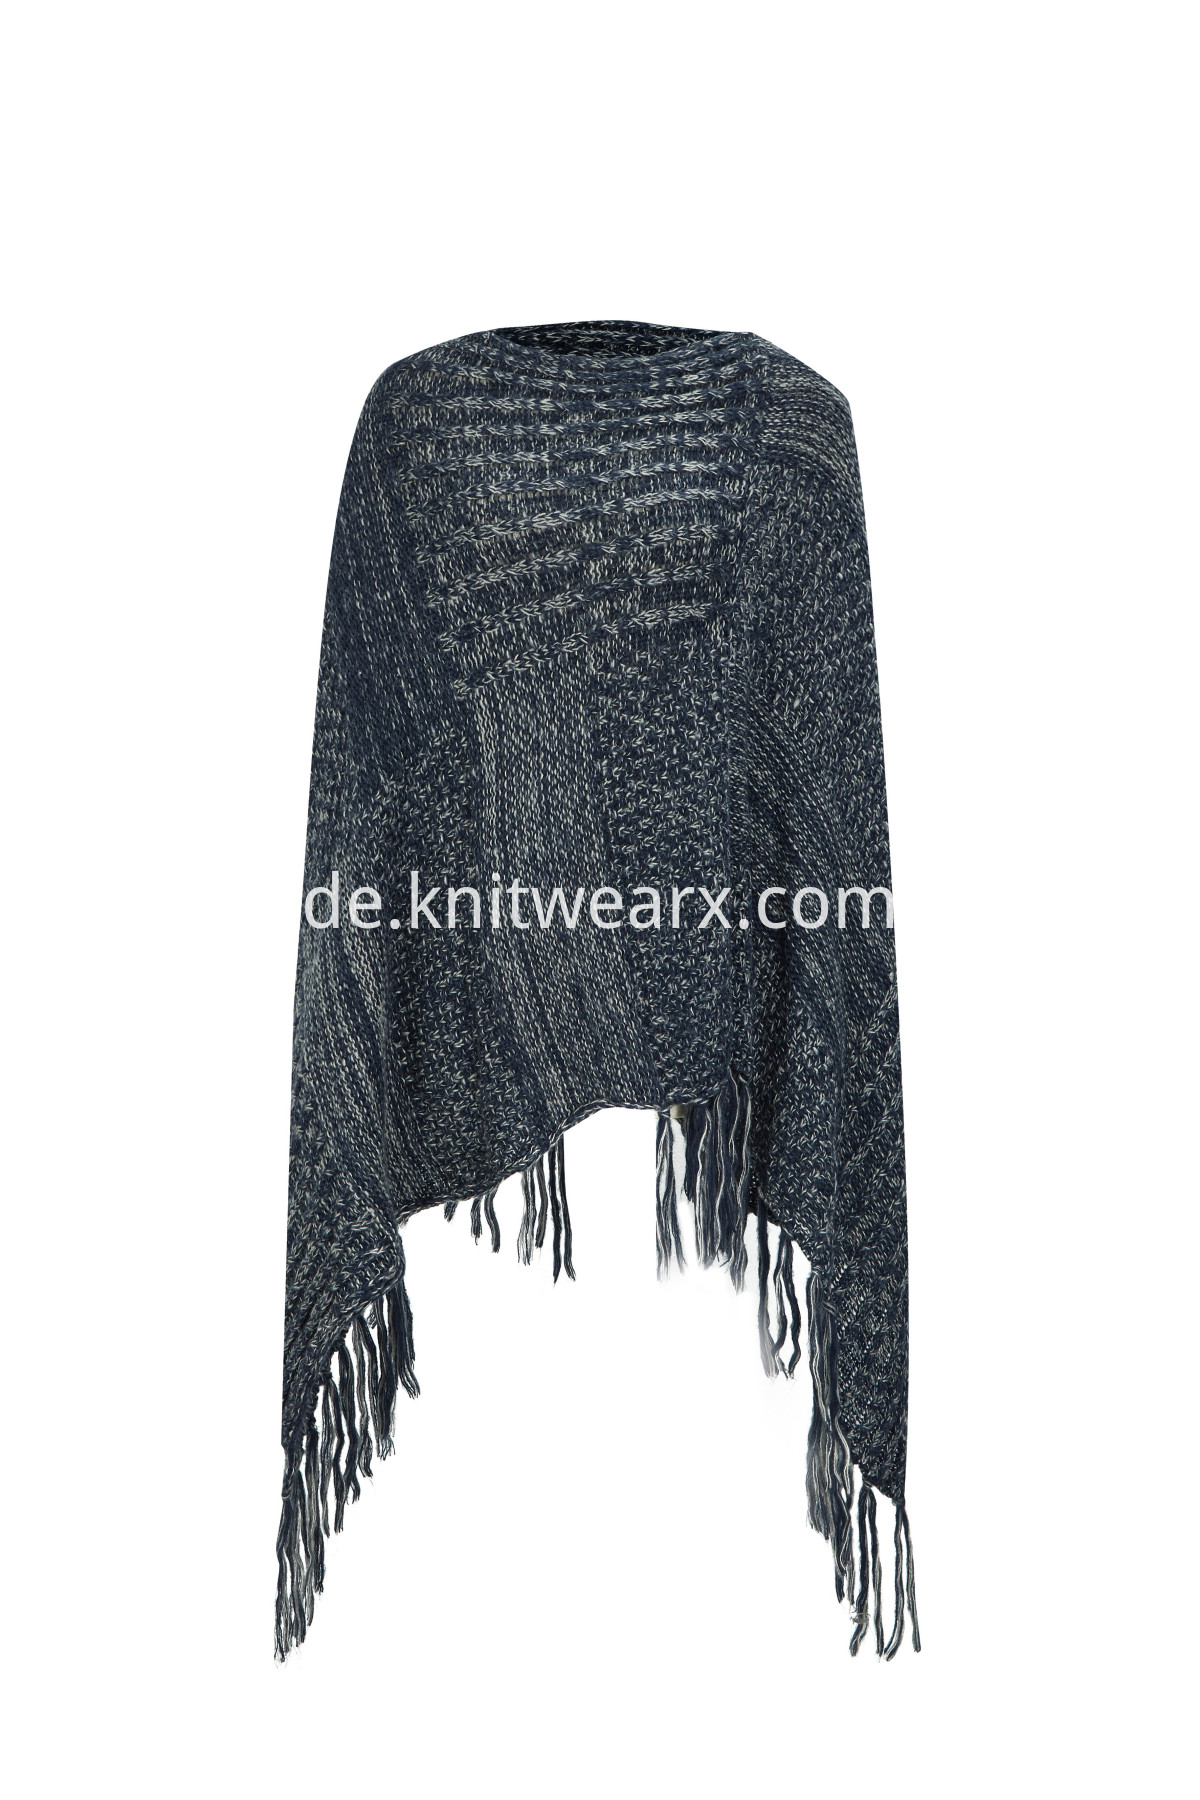 Women's Bohemian Shawl Poncho V-neck Knitted Sweater Cape